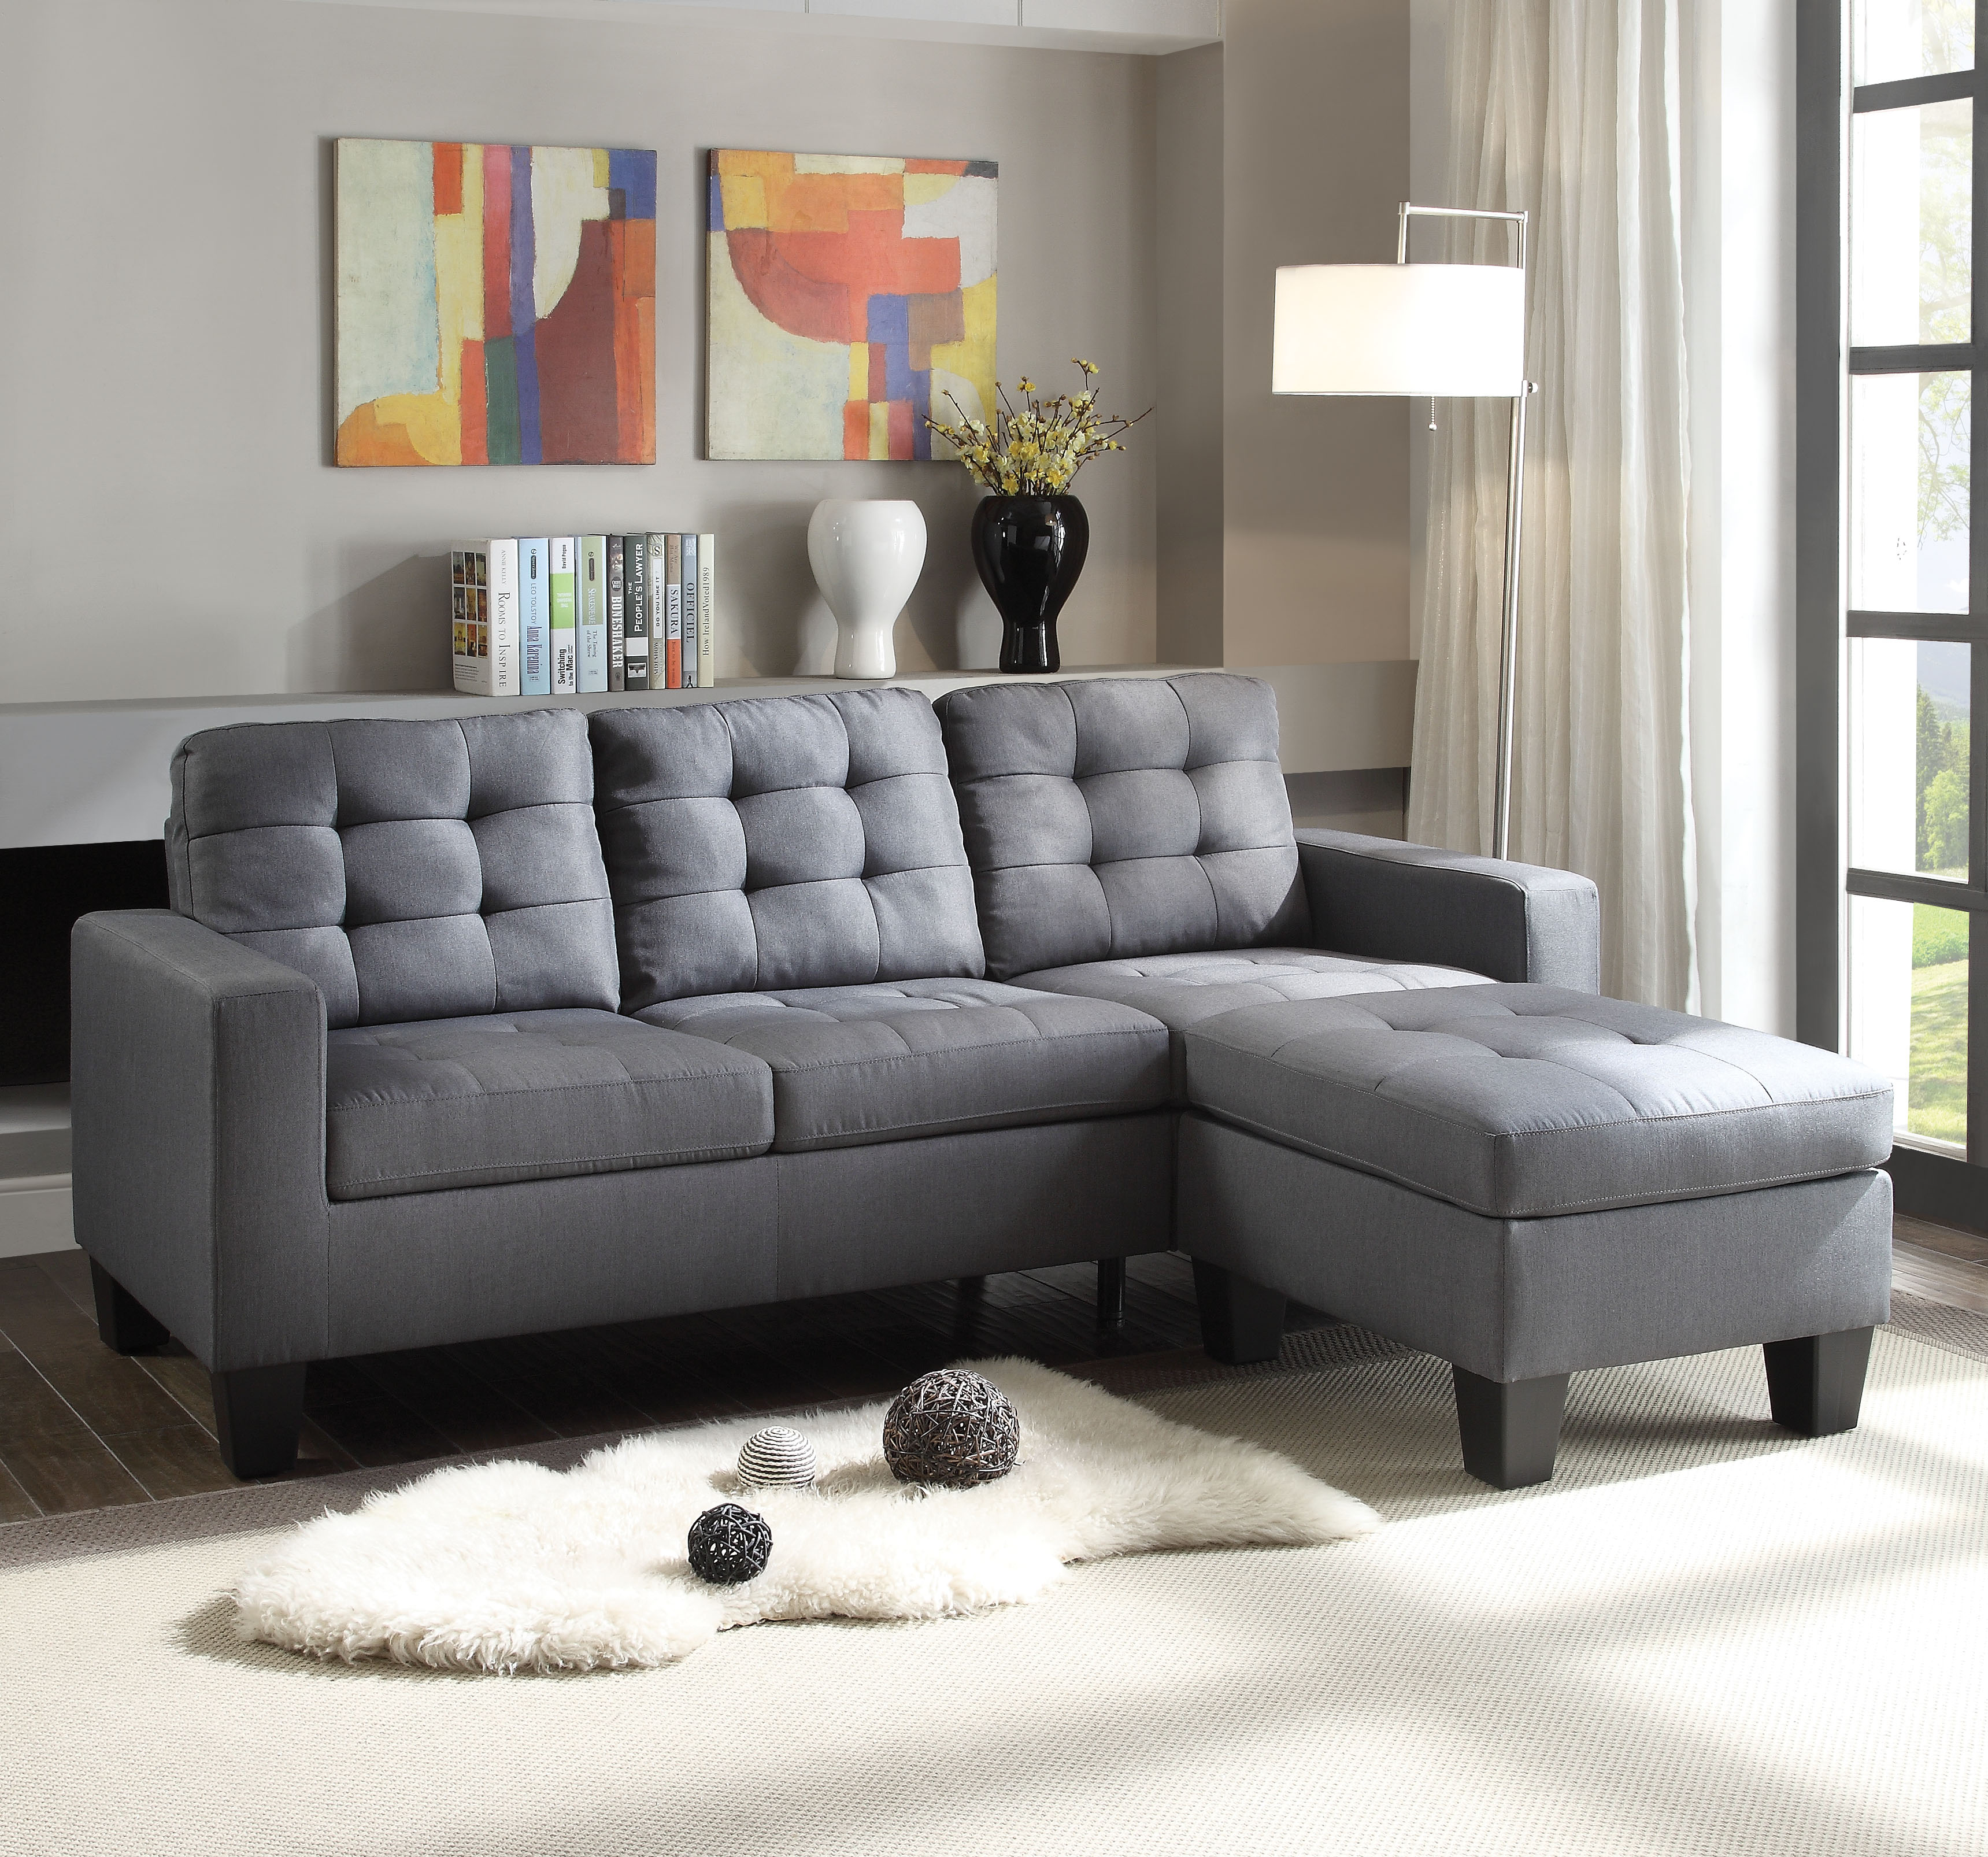 ACME Earsom Tufted Sectional Sofa in Gray Linen Upholstery